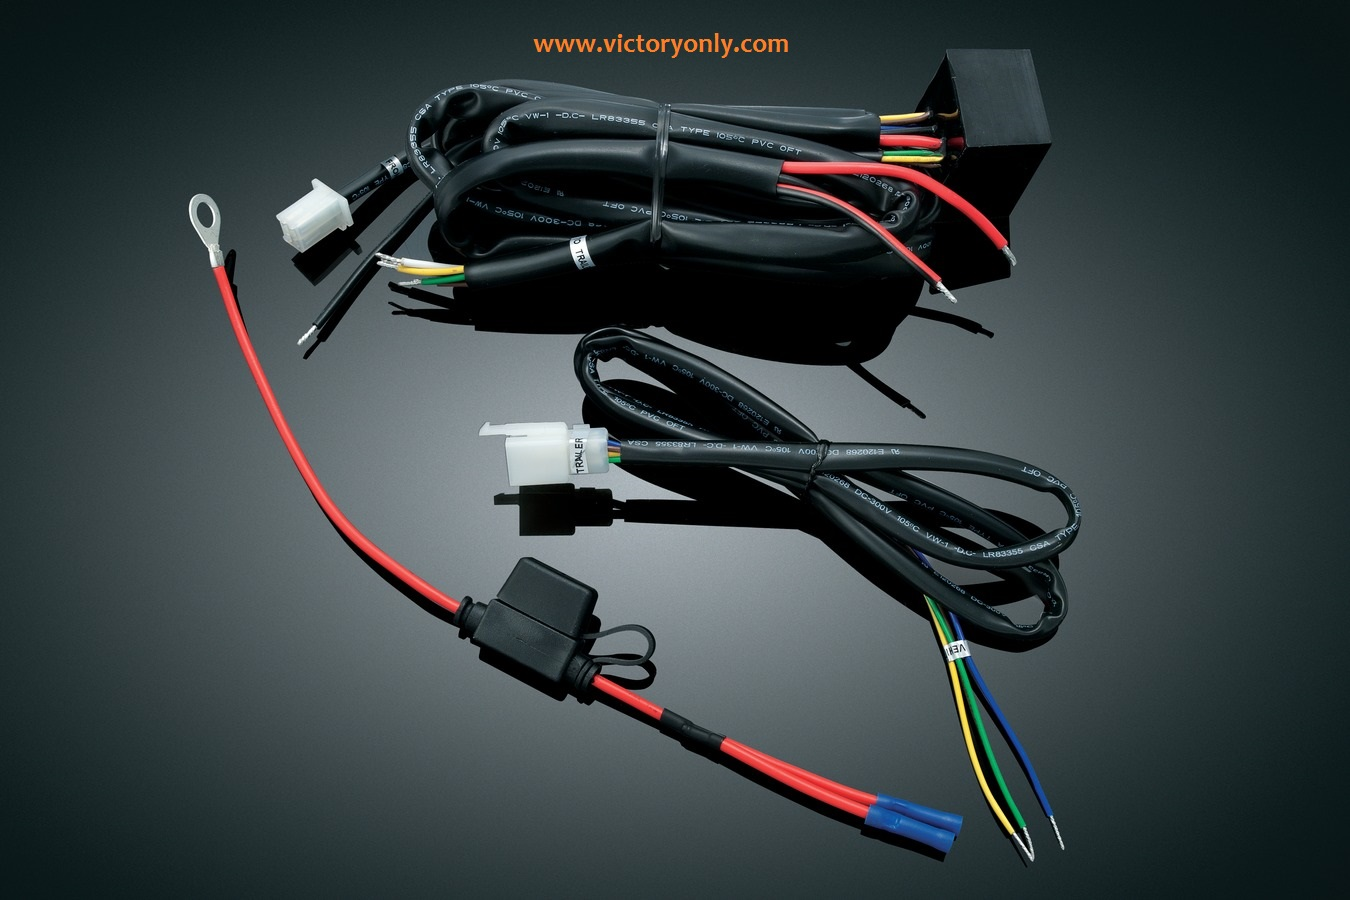 Trailer Wiring Harness For Motorcycles Electrical Diagrams Utility Wire Harnesses Victory Motorcycle Rh Victoryonly Com Bushtec